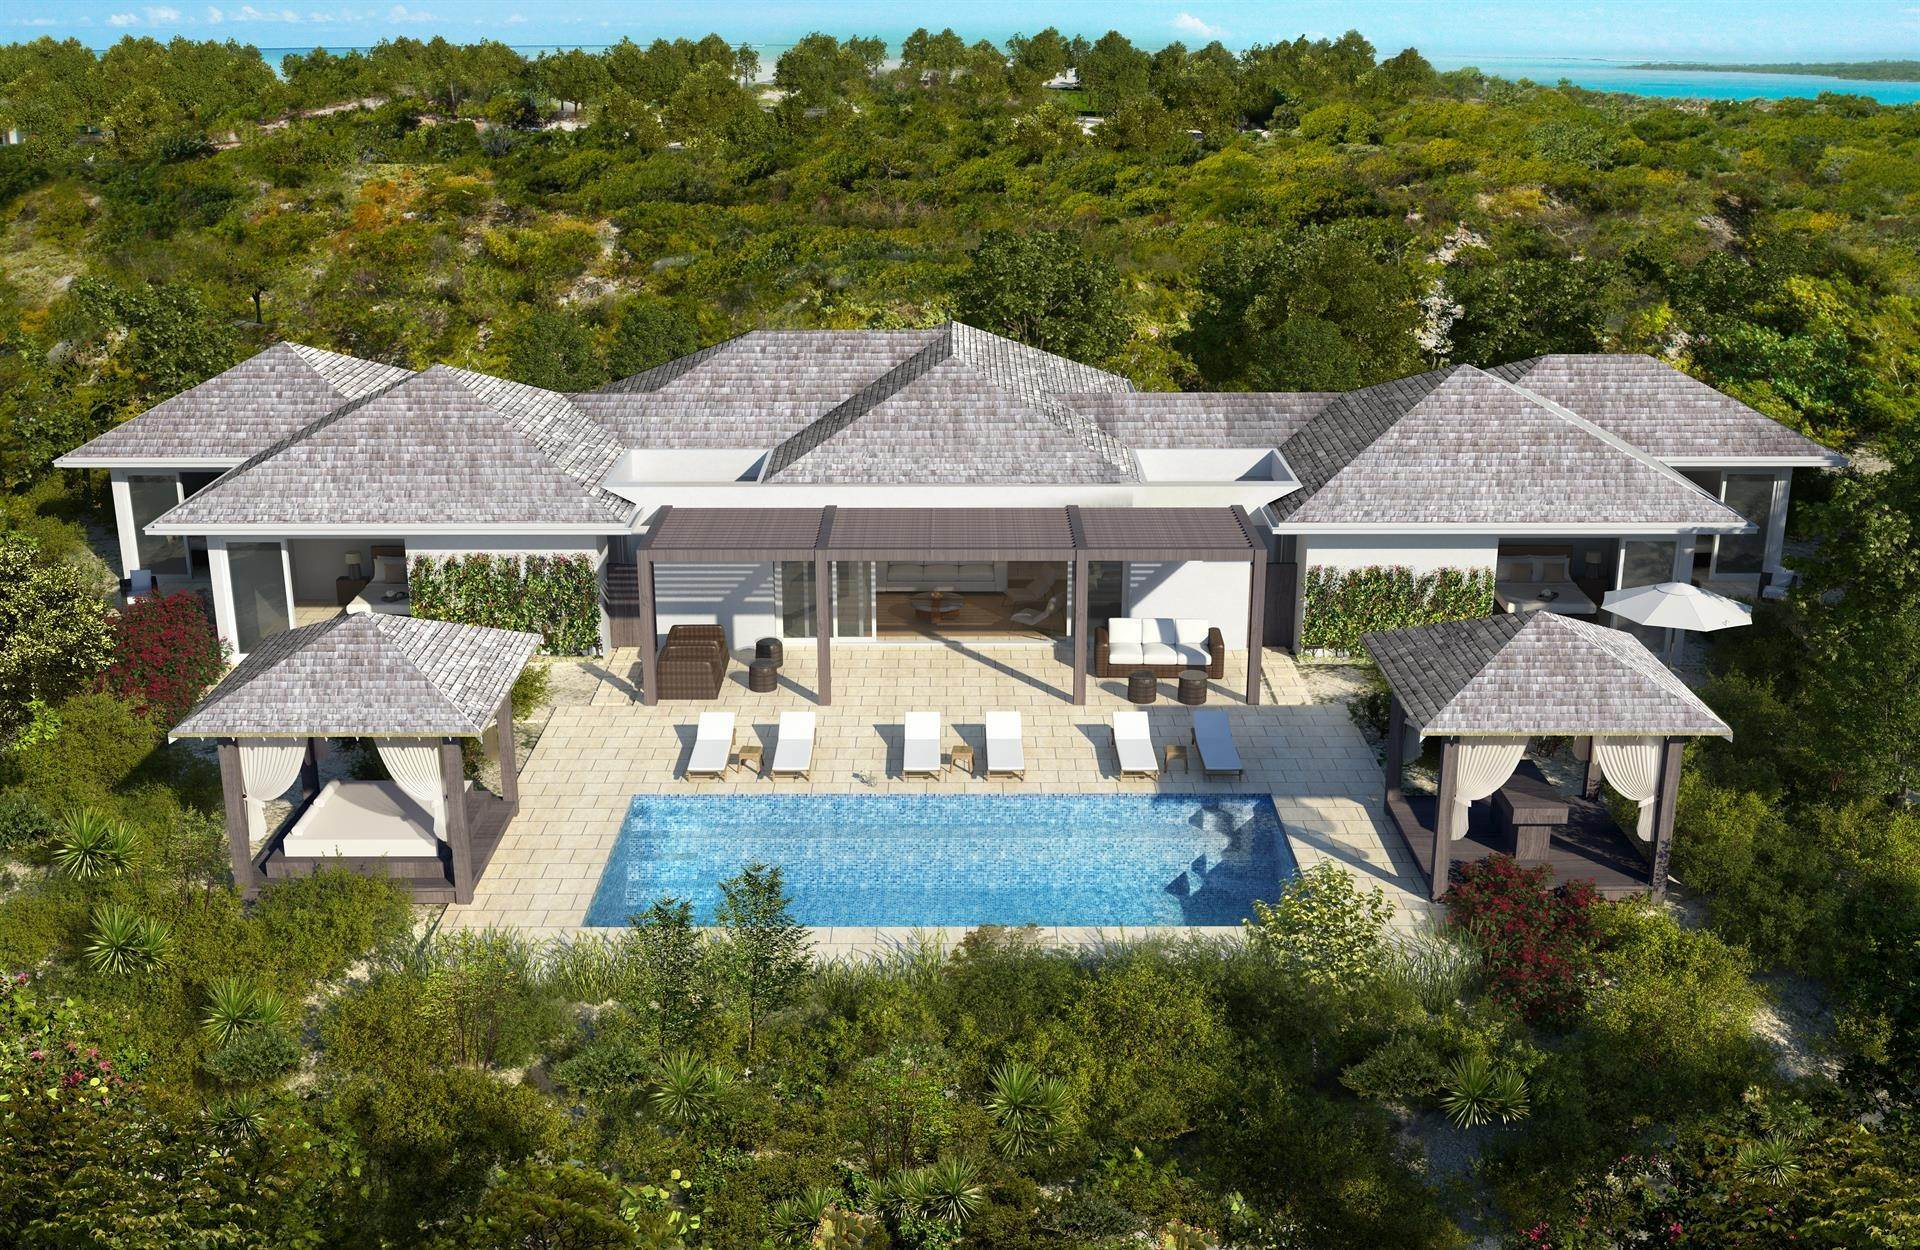 Villa/Townhouse for Sale at The Spa Villa at Sailrock The Spa Villa Sailrock, South Caicos,BWI Turks And Caicos Islands